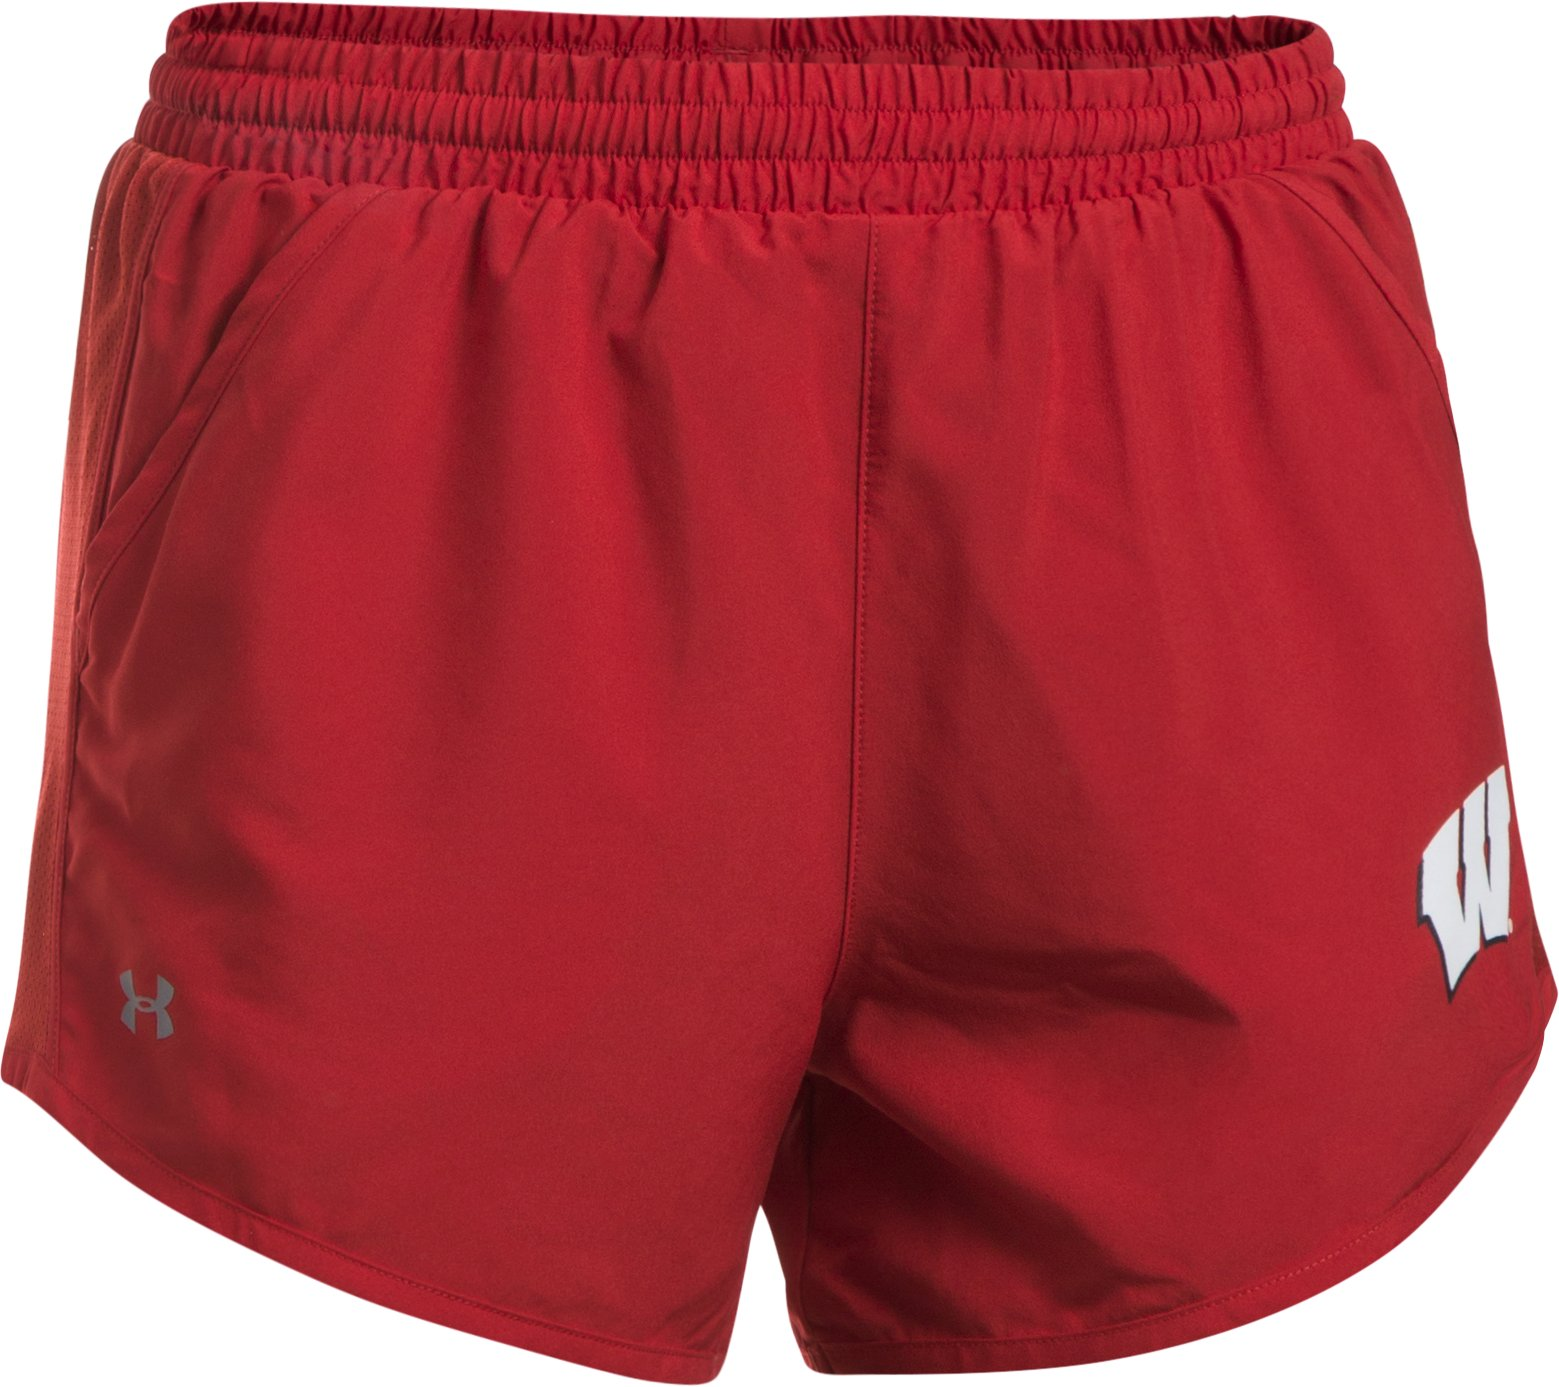 Women's Wisconsin Fly By Shorts, Flawless, undefined